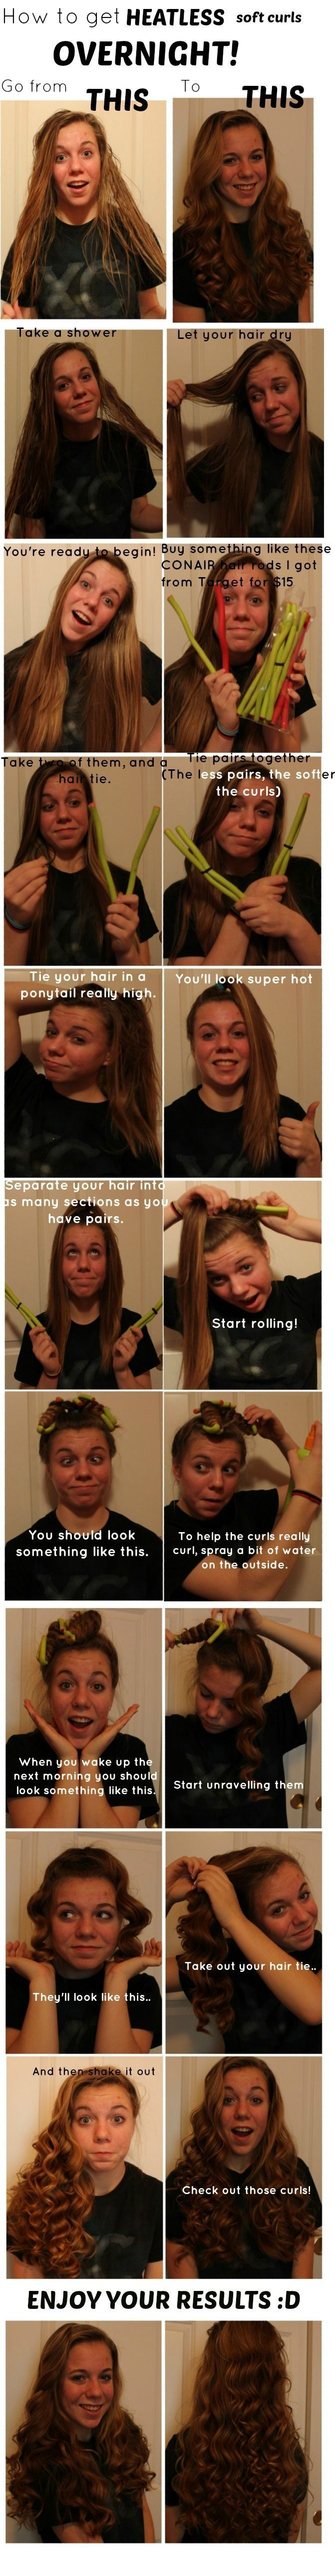 Heatless curls? Hmmm... Got to try this out - I wonder if Pipe cleaners would work....